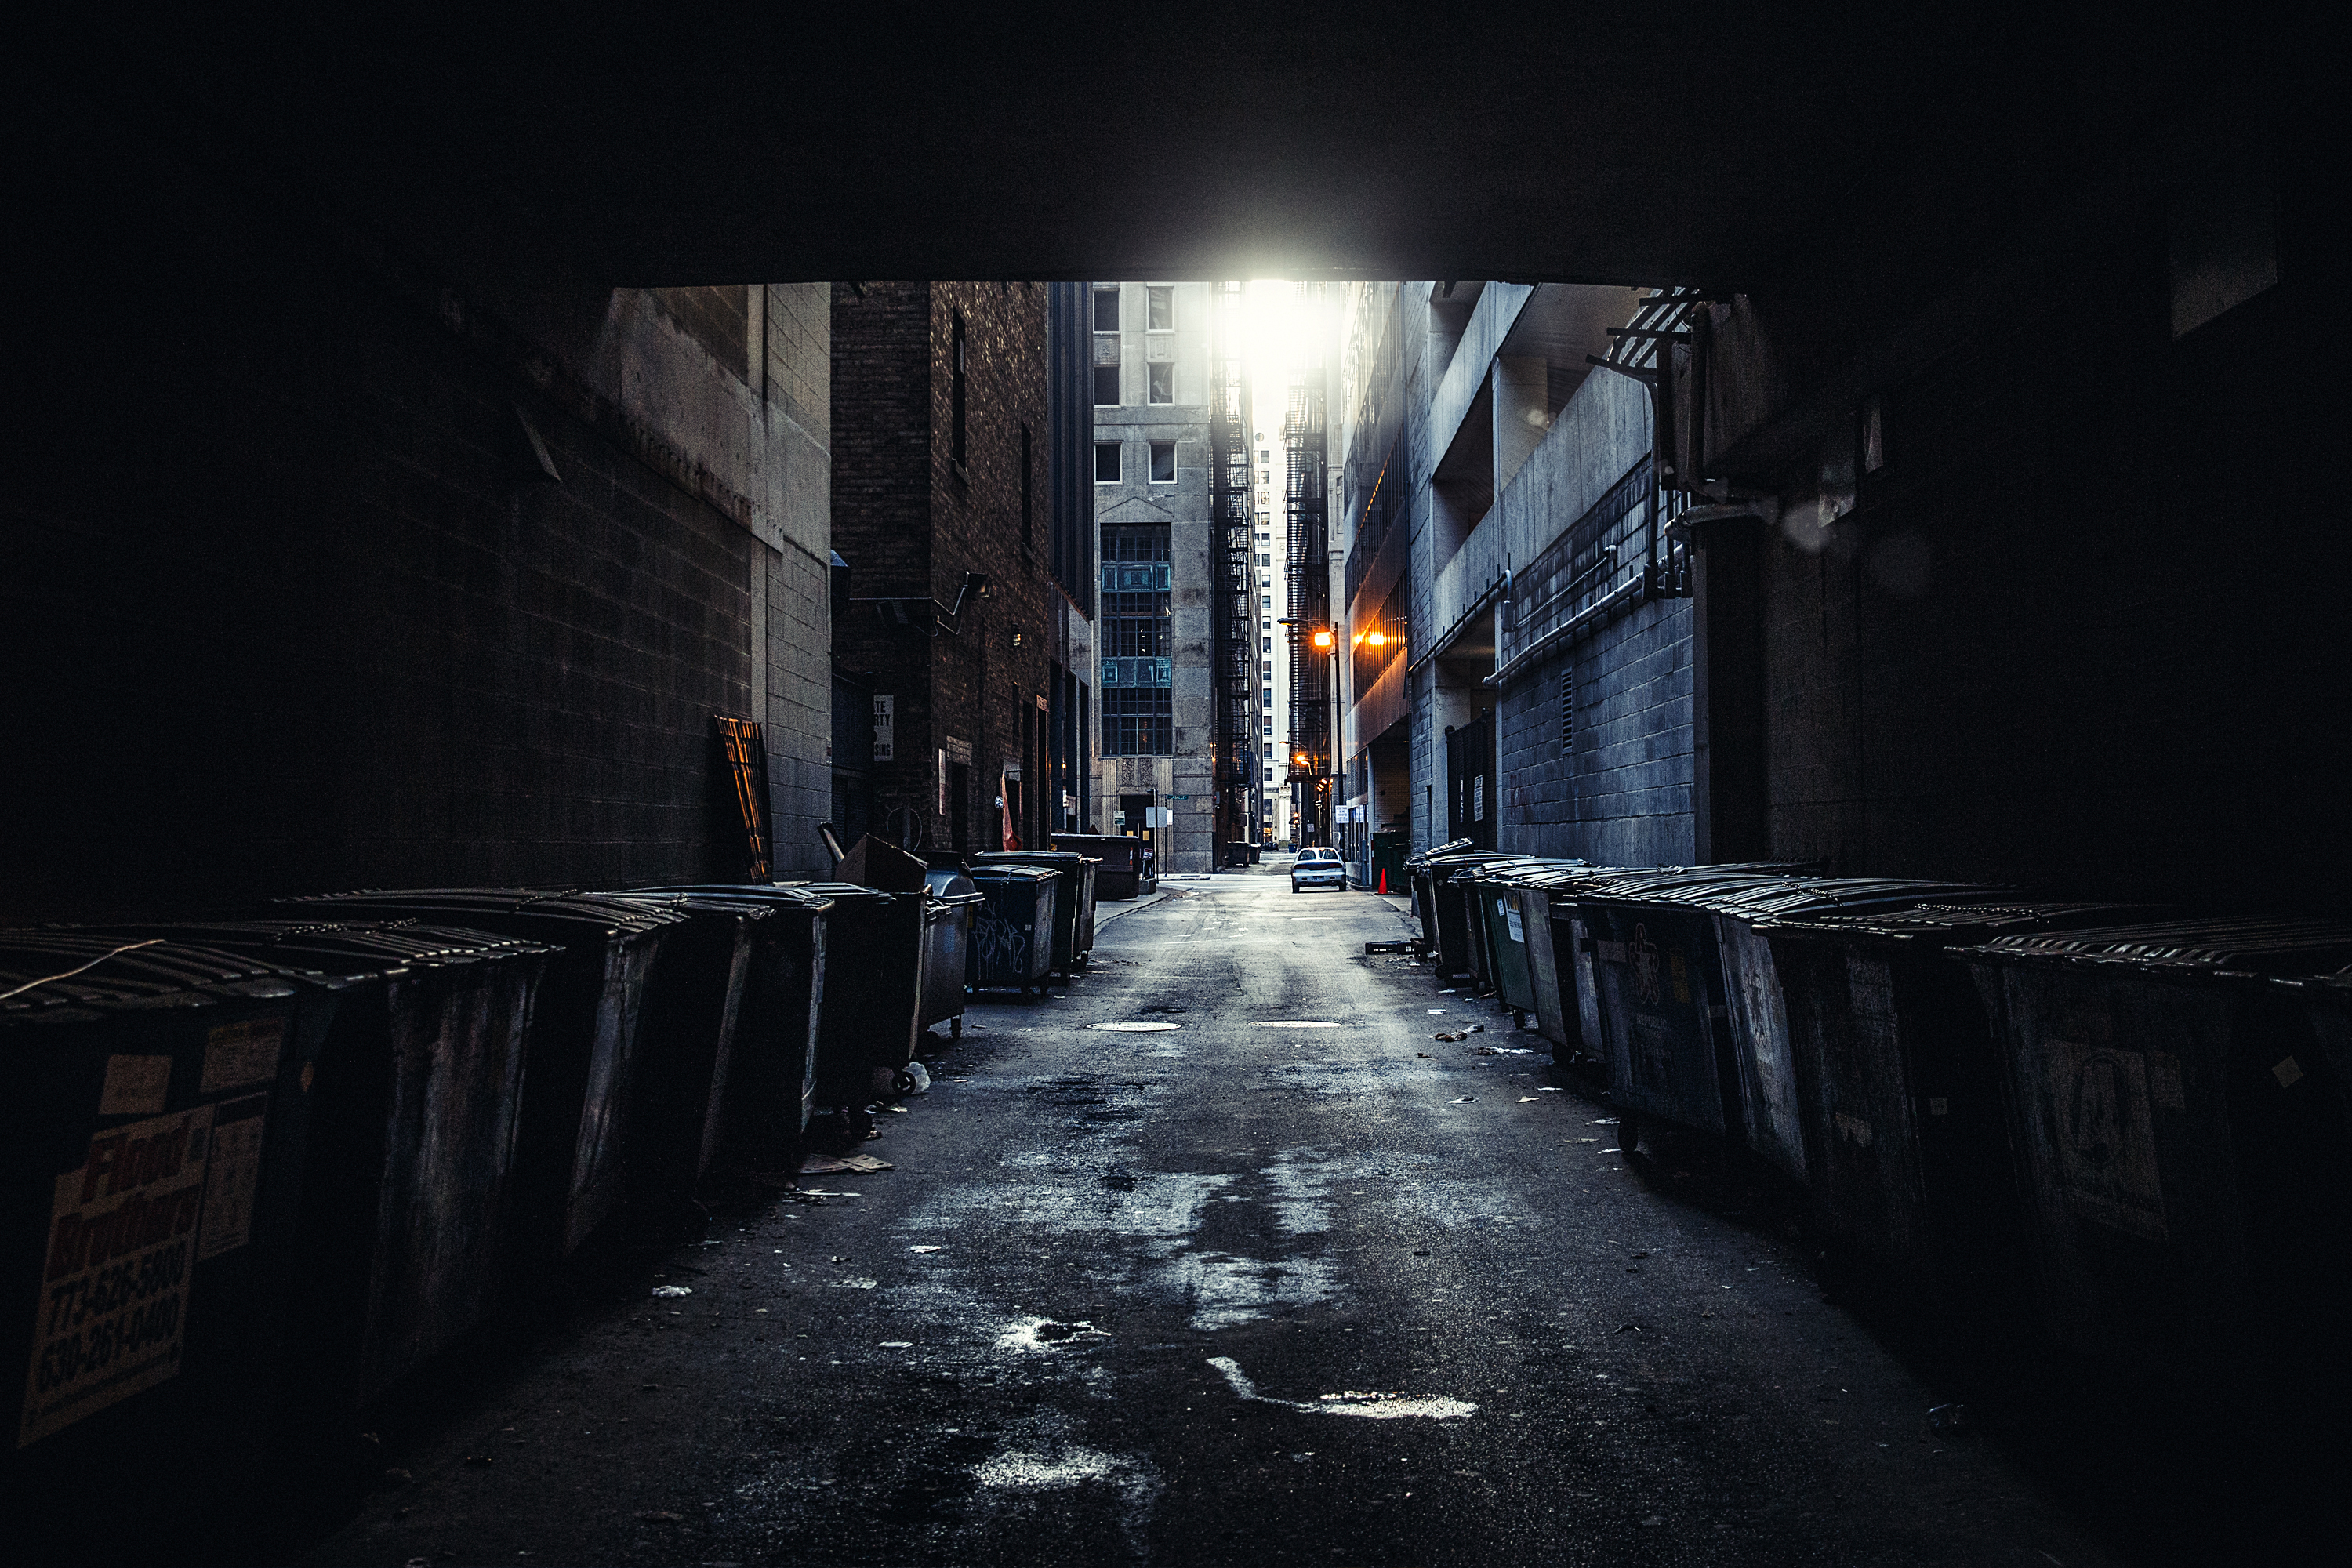 Chicago Alley I